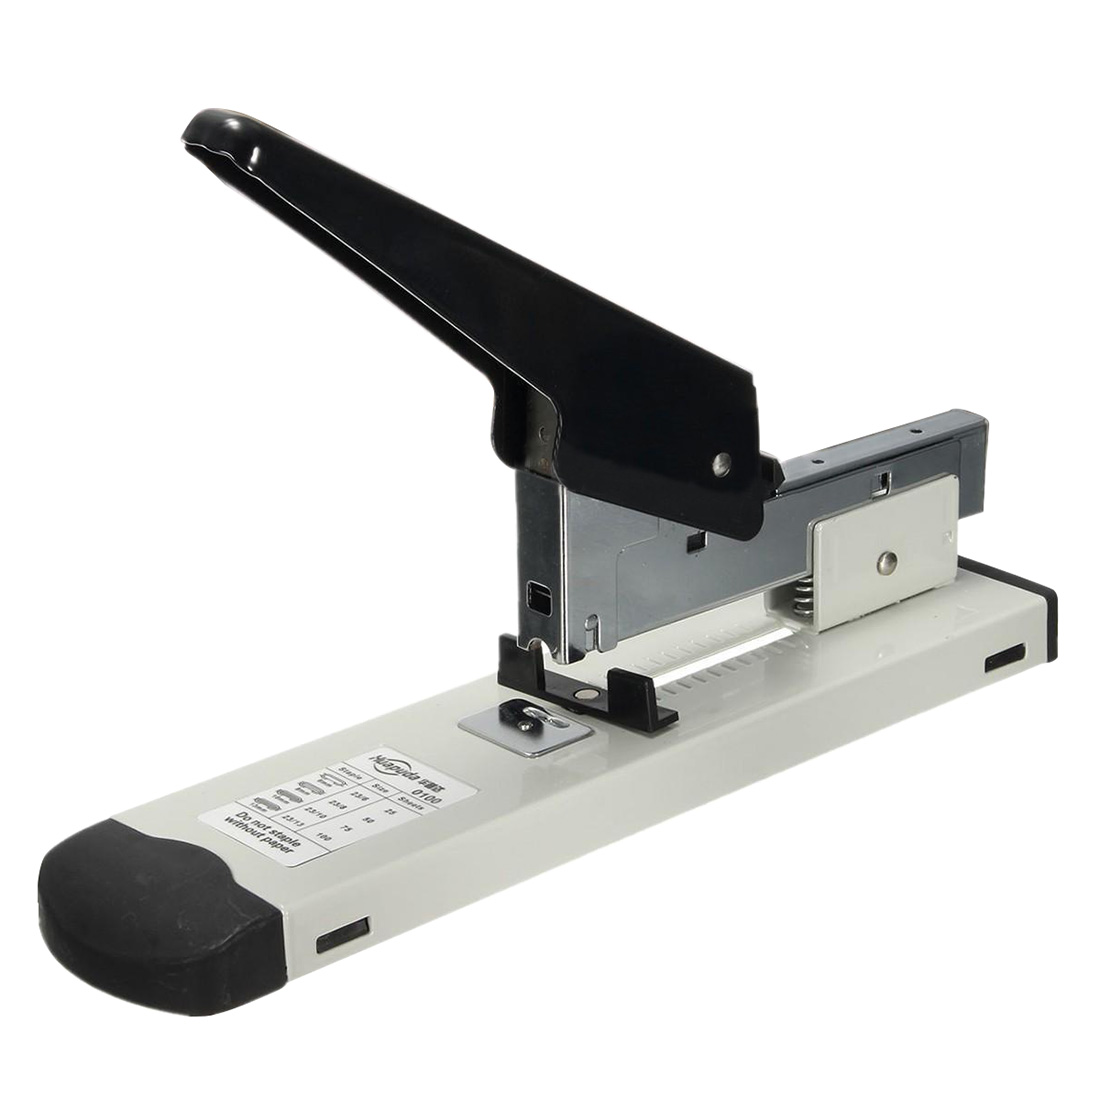 Huapuda Heavy Type Metal Stapler Bookbinding Stapling 120 Sheet Capacity Office Tools Fit Staples(Pins) 23/6, 23/8, 23/10, 23/13